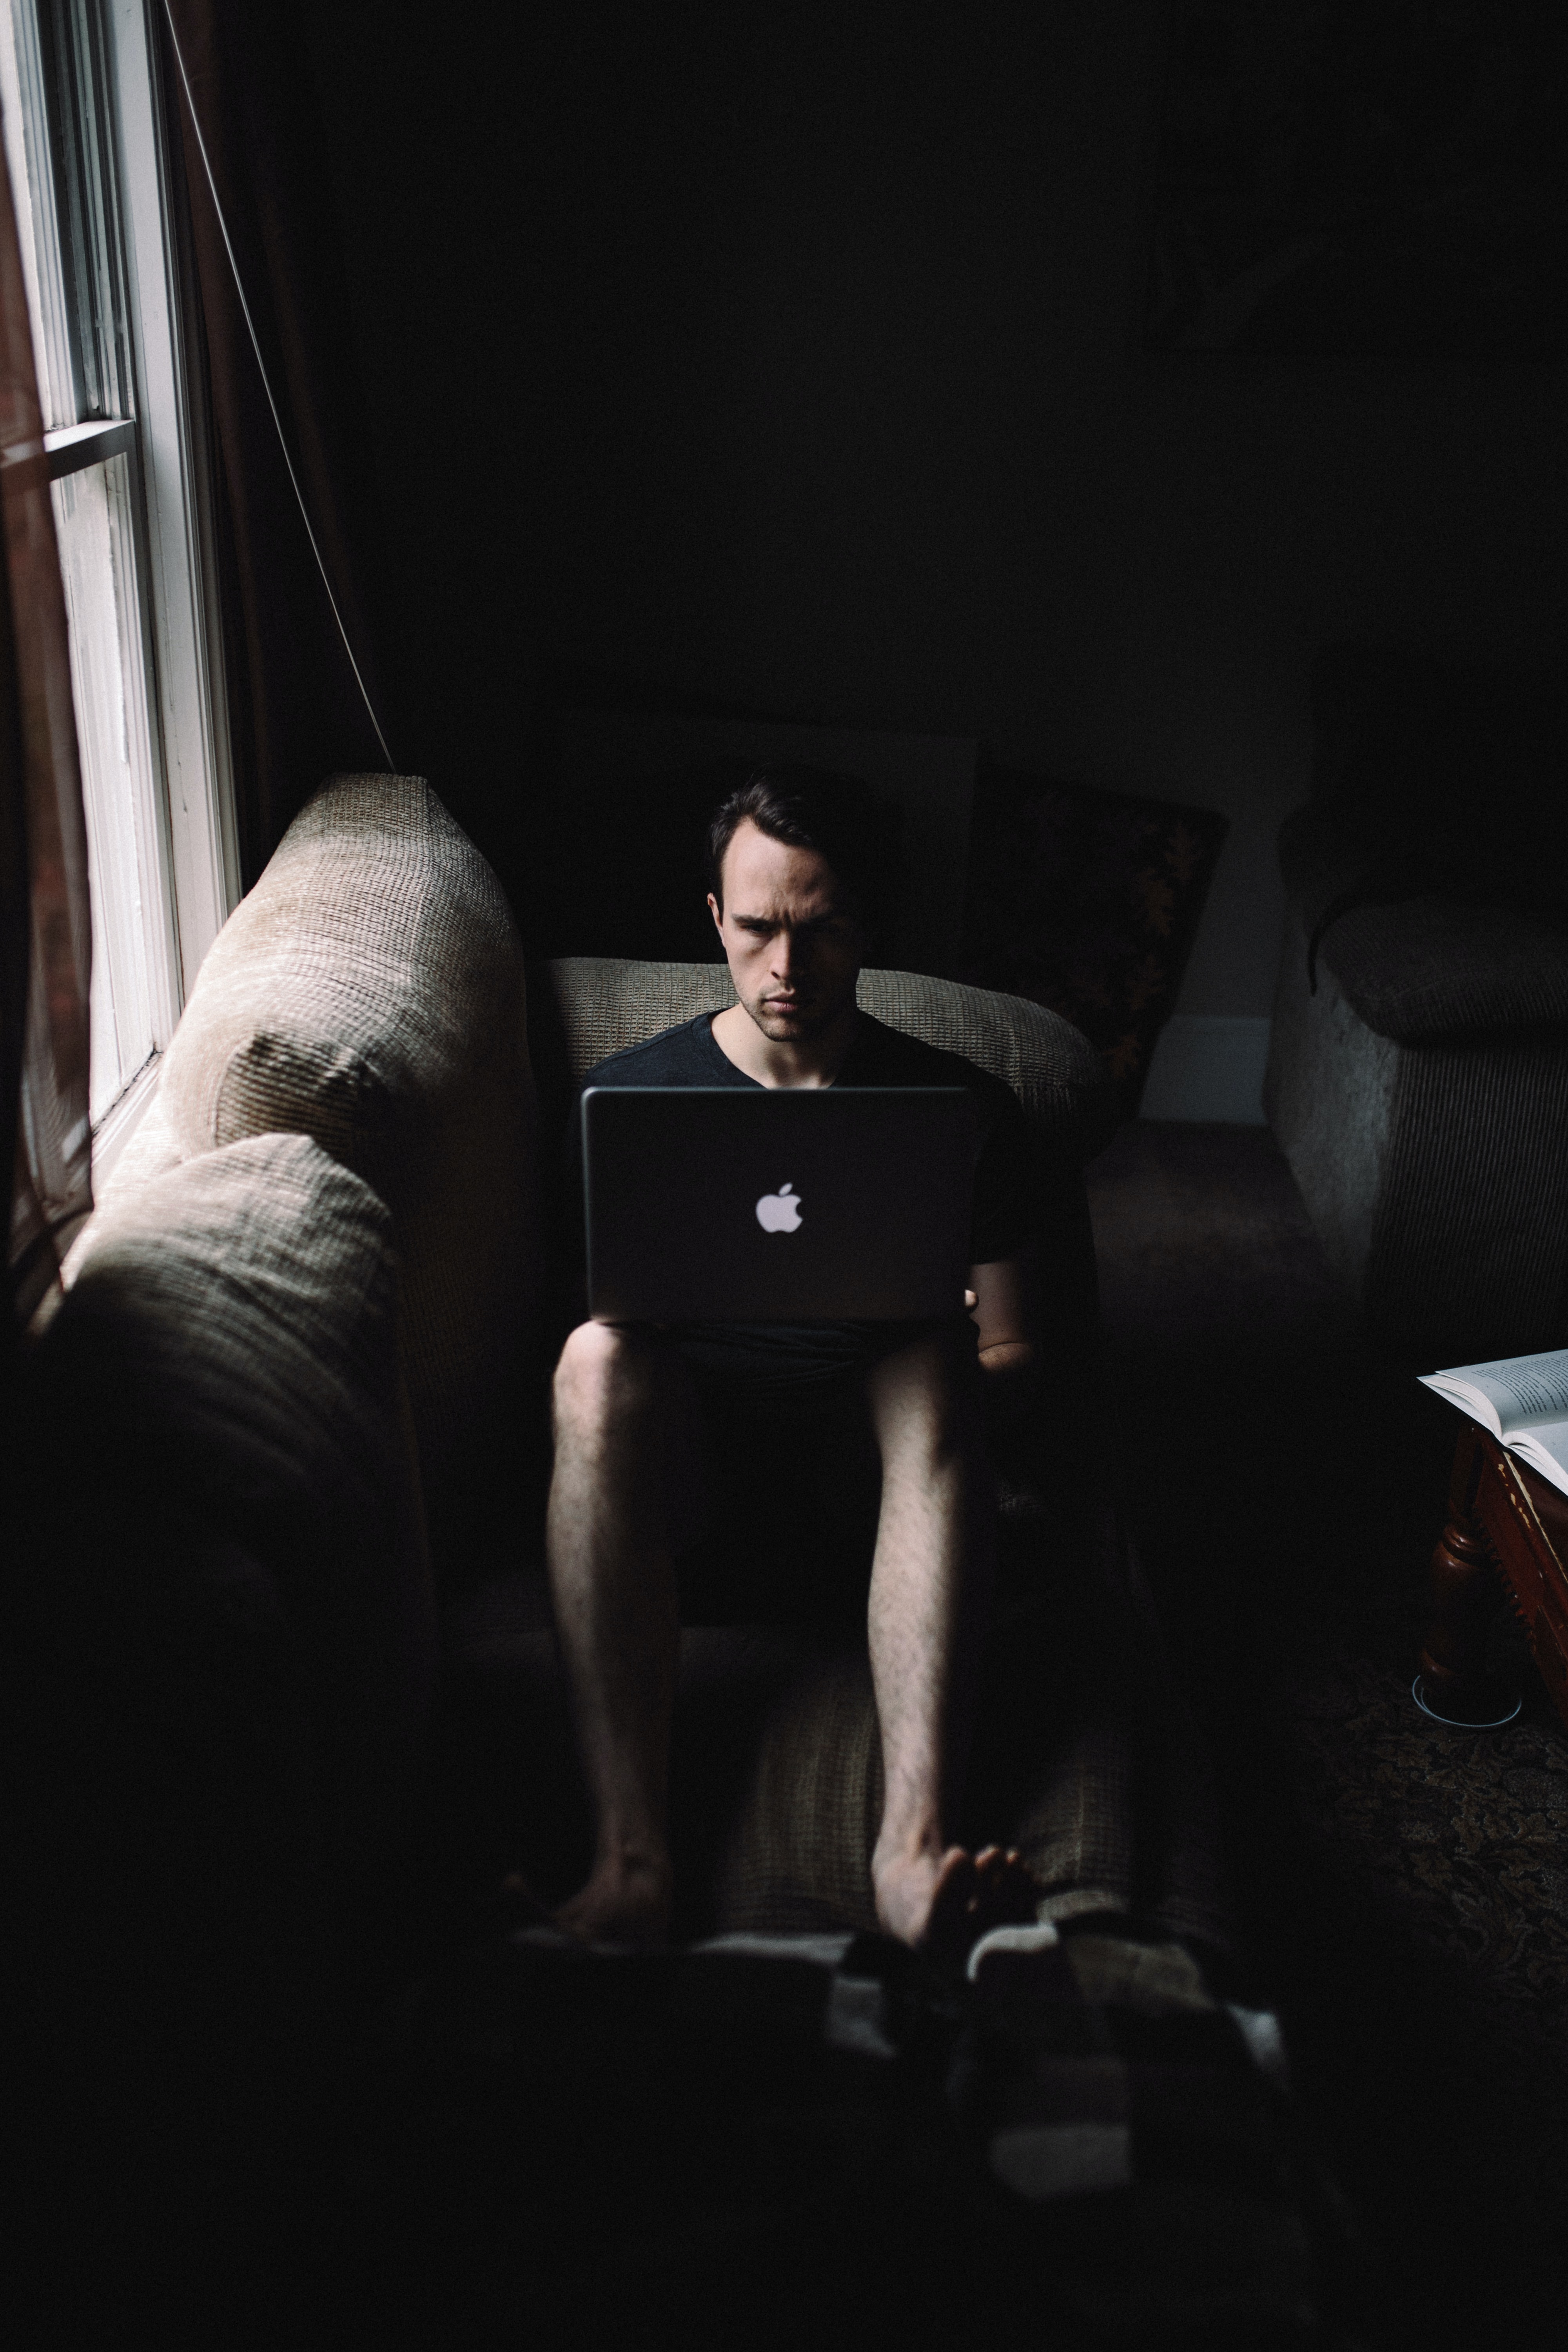 A barefoot man sitting on a sofa and looking at a MacBook on his lap